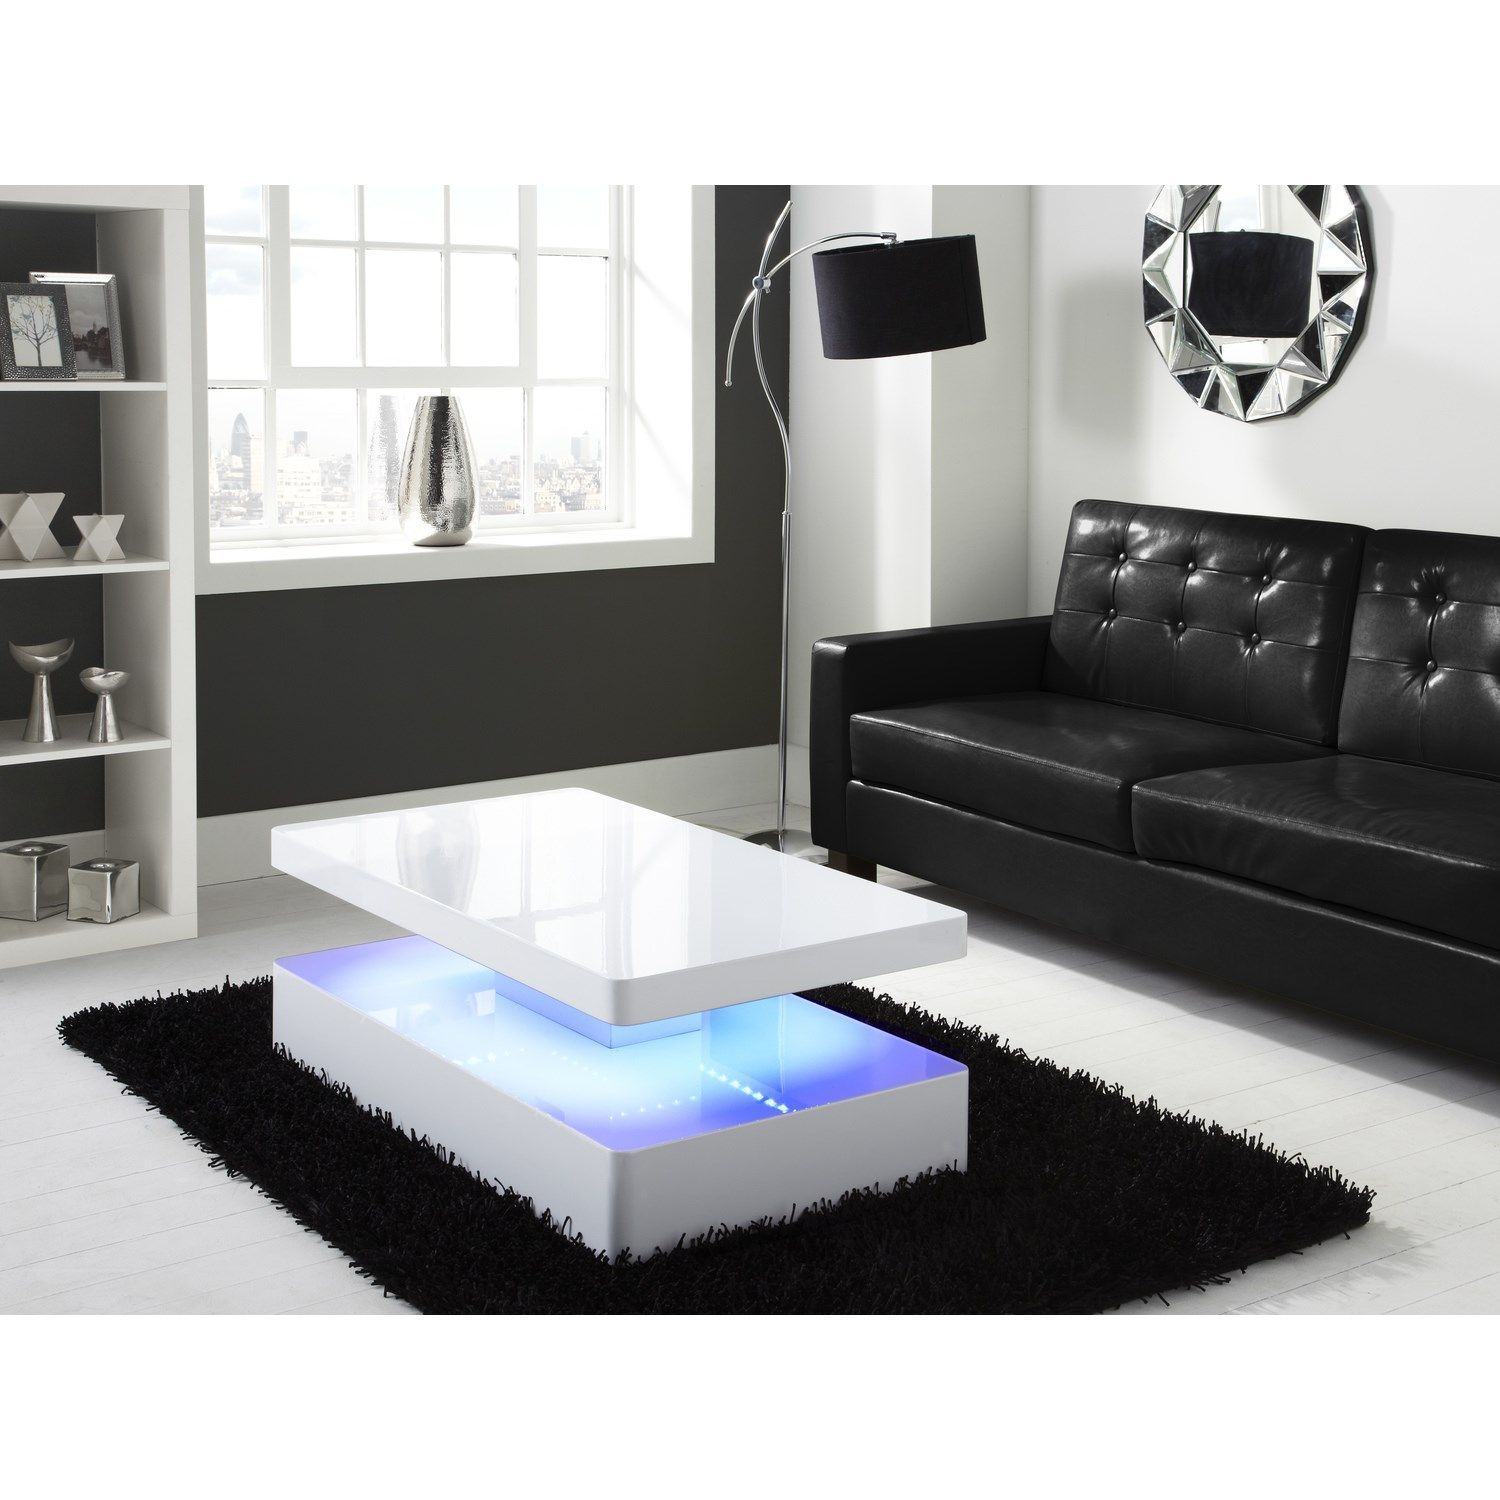 High Gloss White Coffee Table With Led Lighting Tiffany Range Center Table Living Room Coffee Table White Furniture Living Room [ 1500 x 1500 Pixel ]